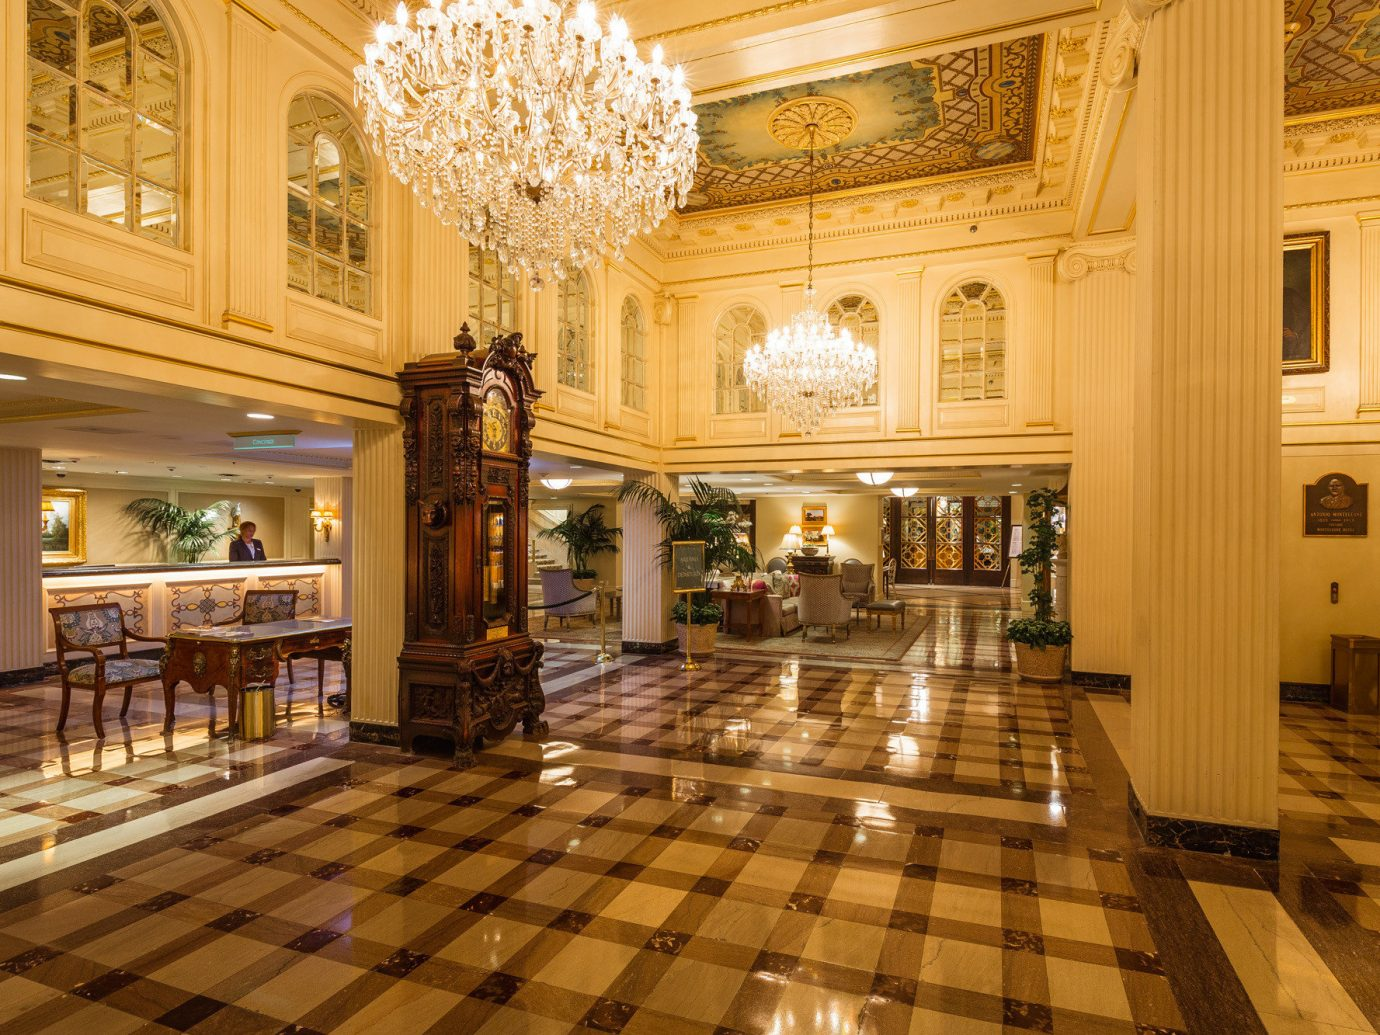 Hotels indoor floor Lobby interior design ceiling function hall flooring estate ballroom hall hotel